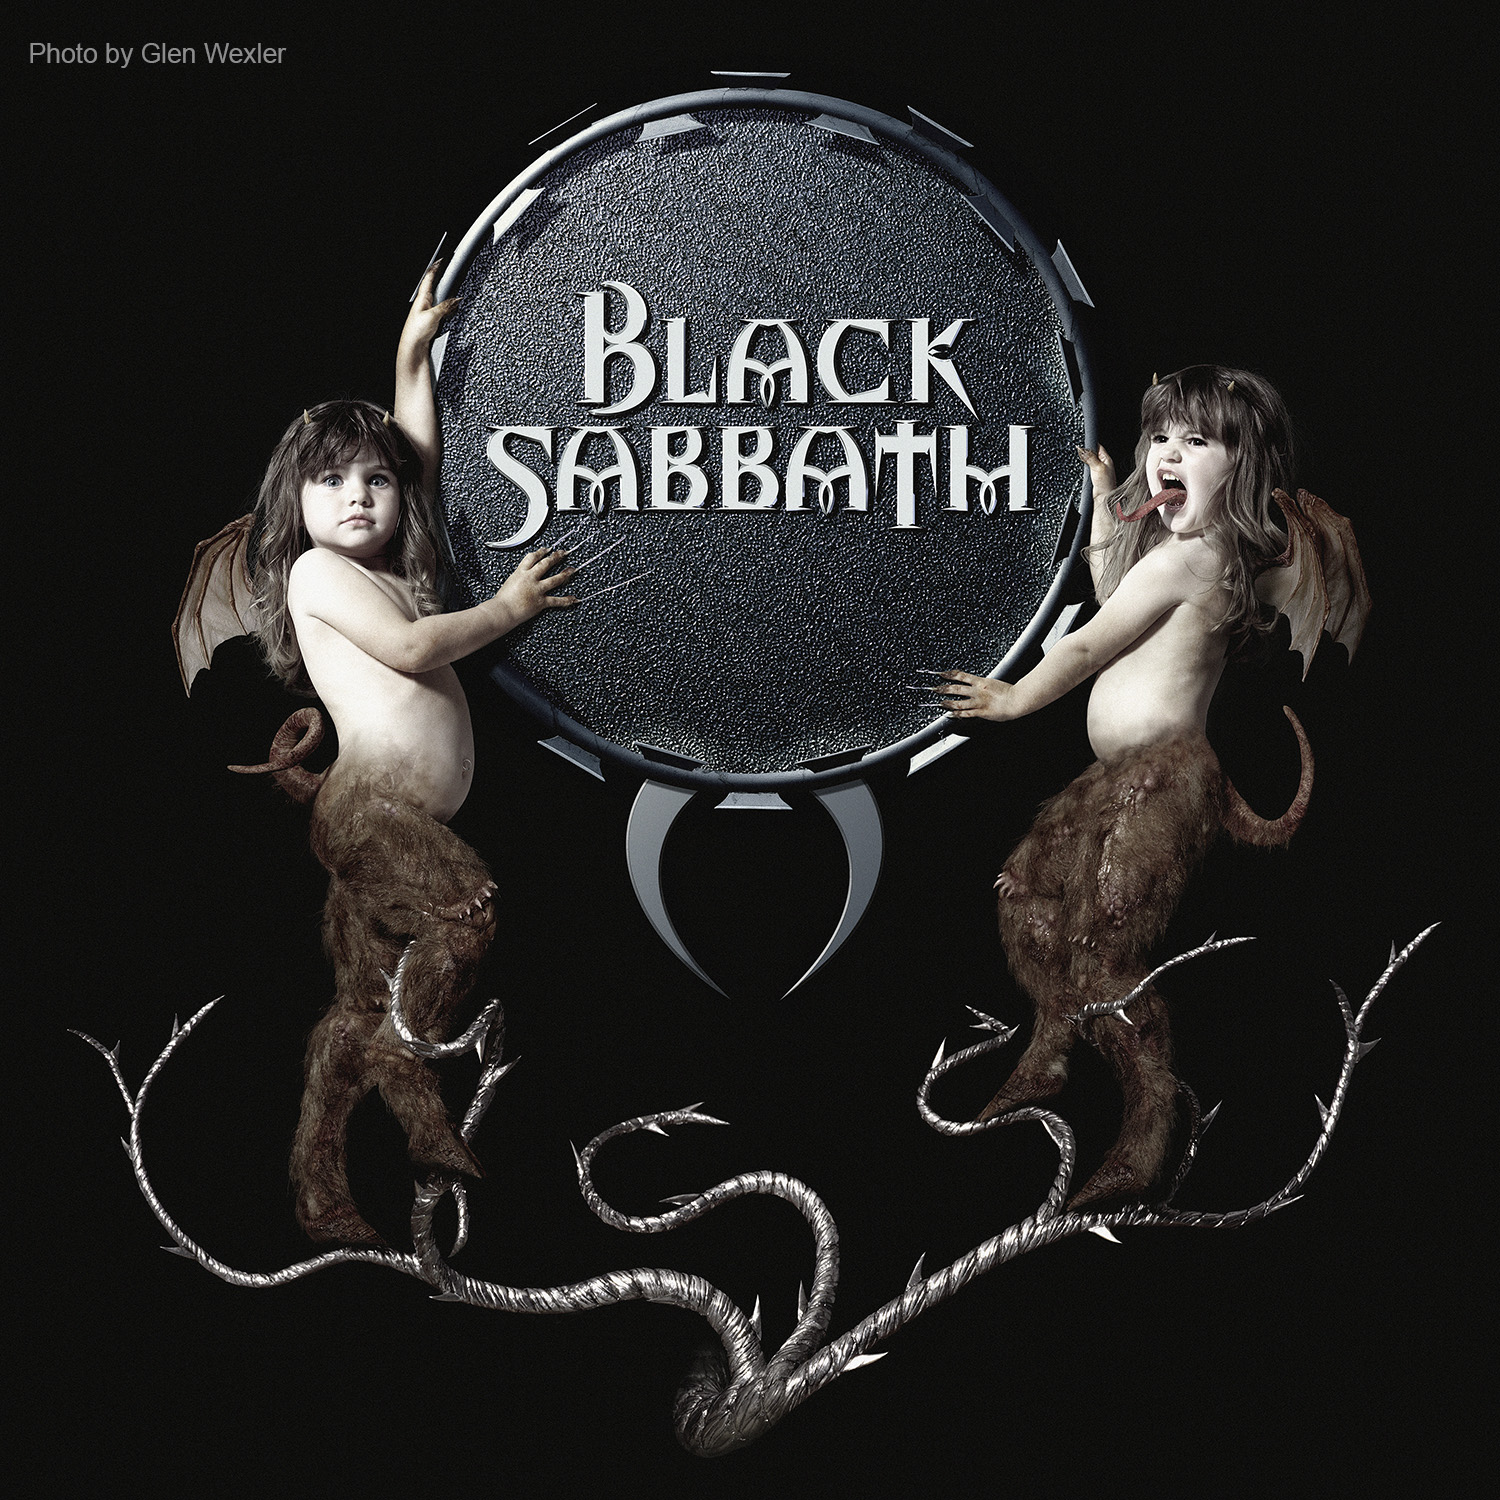 """Black Sabbath"" (1999) logo treatment and album cover for Black Sabbath. The type was created with 3D software. All other elements and surfaces are photography."